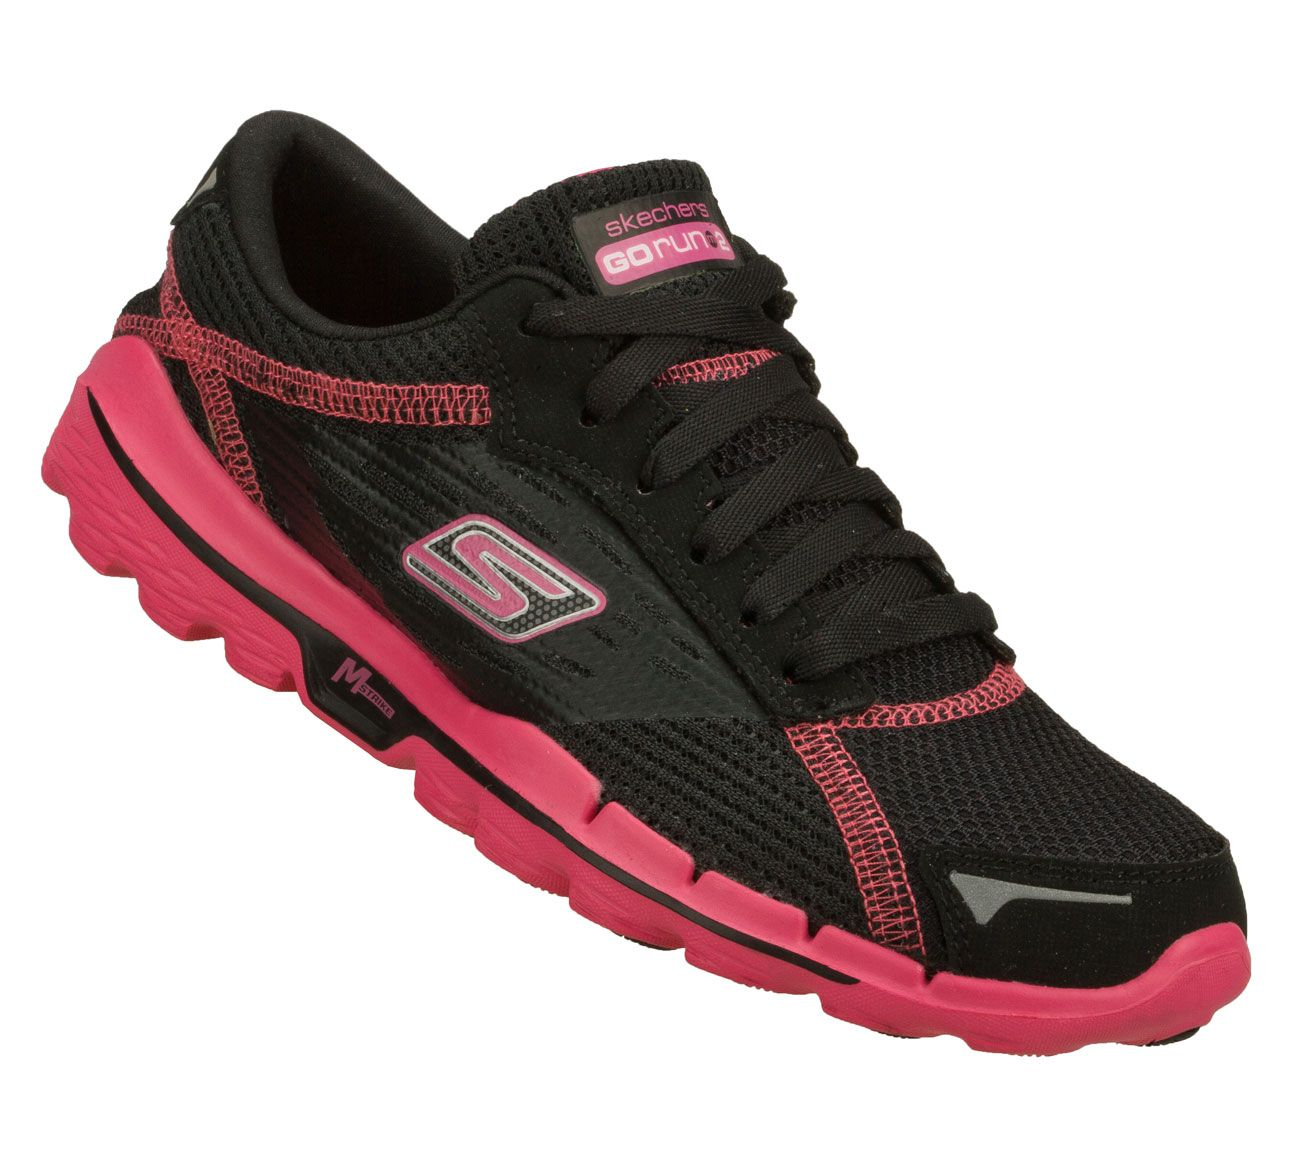 Buy Skechers Women S Skechers Gorun 2 Running Shoes No Socks